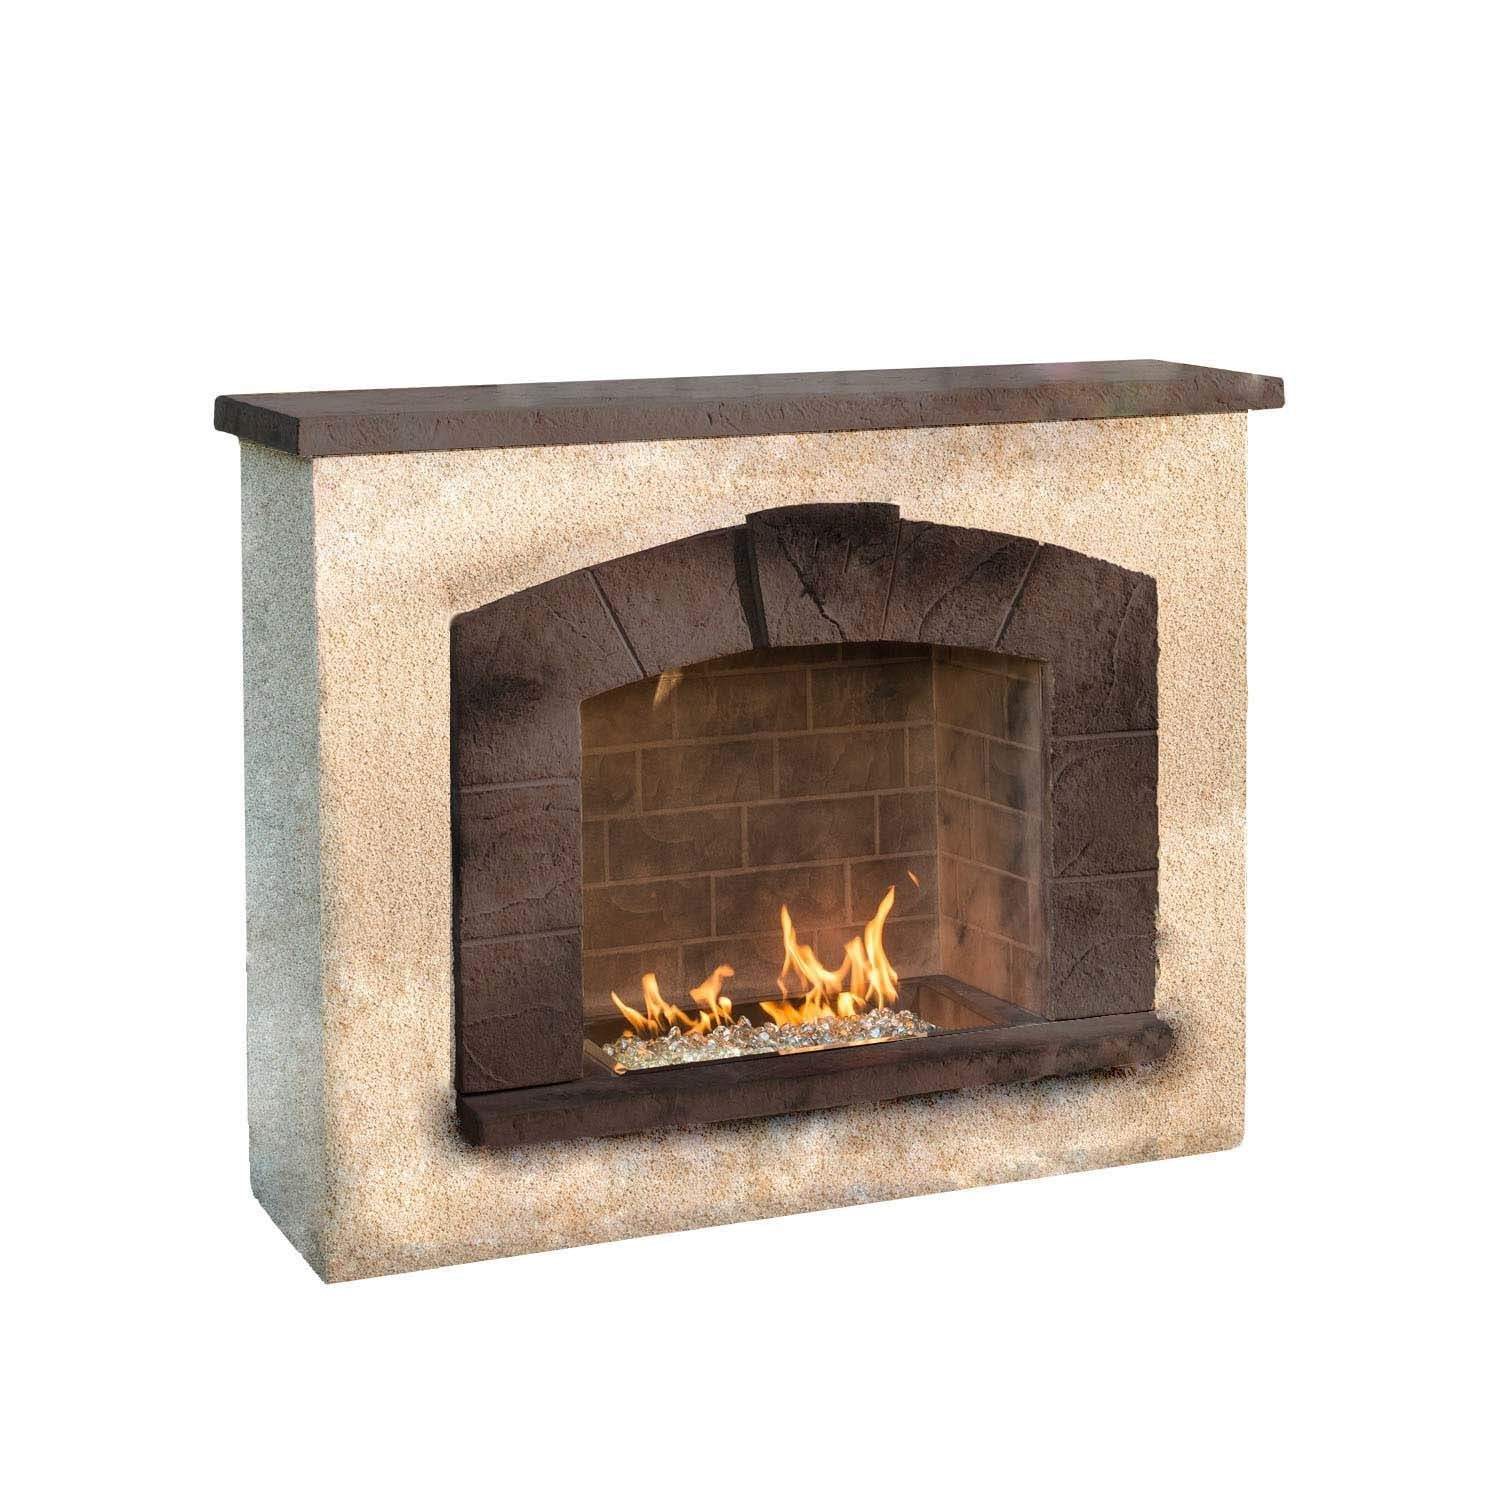 Outdoor Greatroom Stone Arch Outdoor Gas Fireplace New Ebay